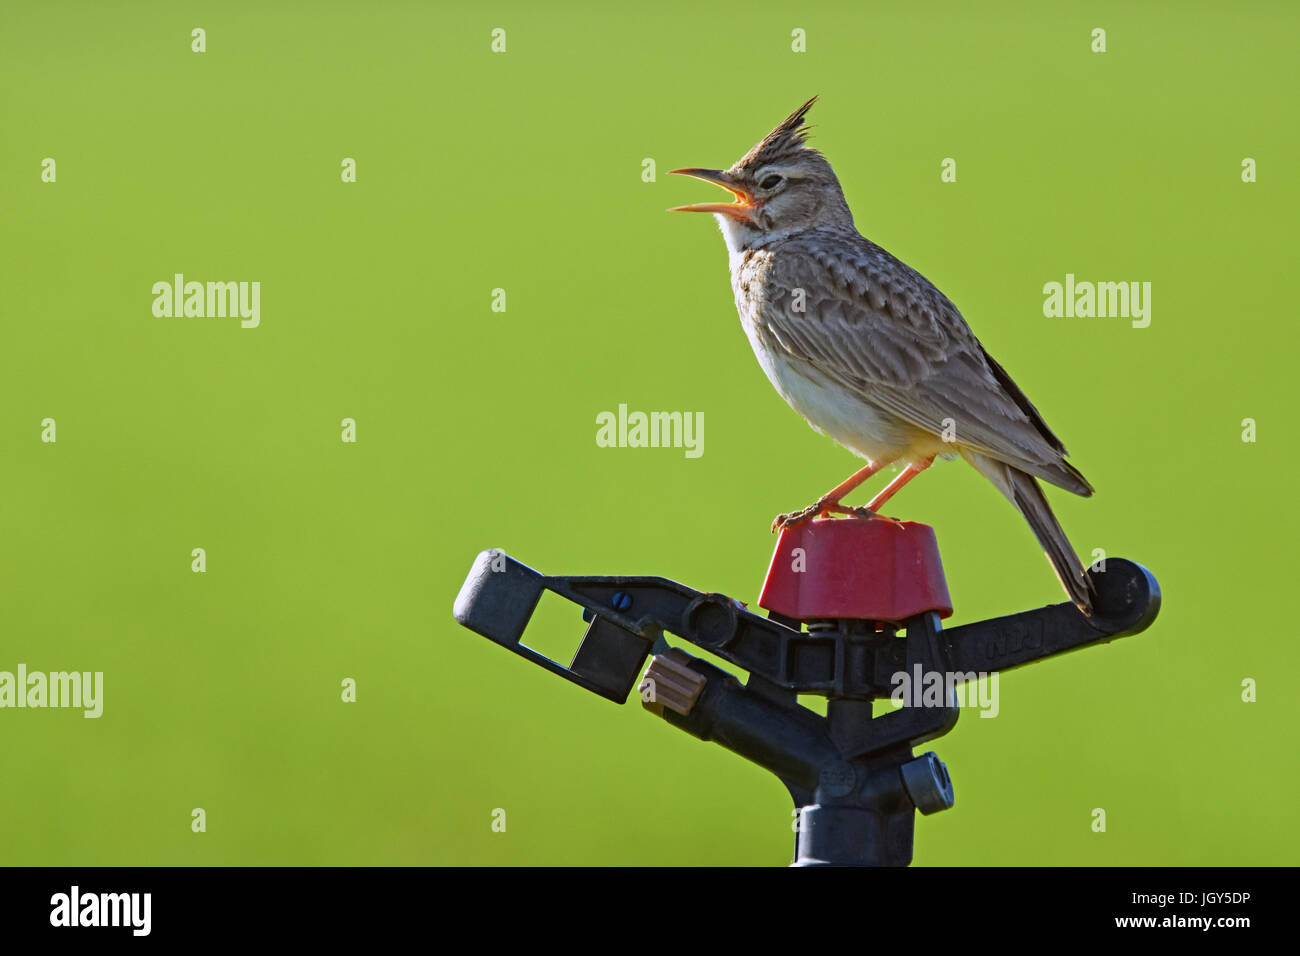 Crested lark sings on water sprinkler - Stock Image